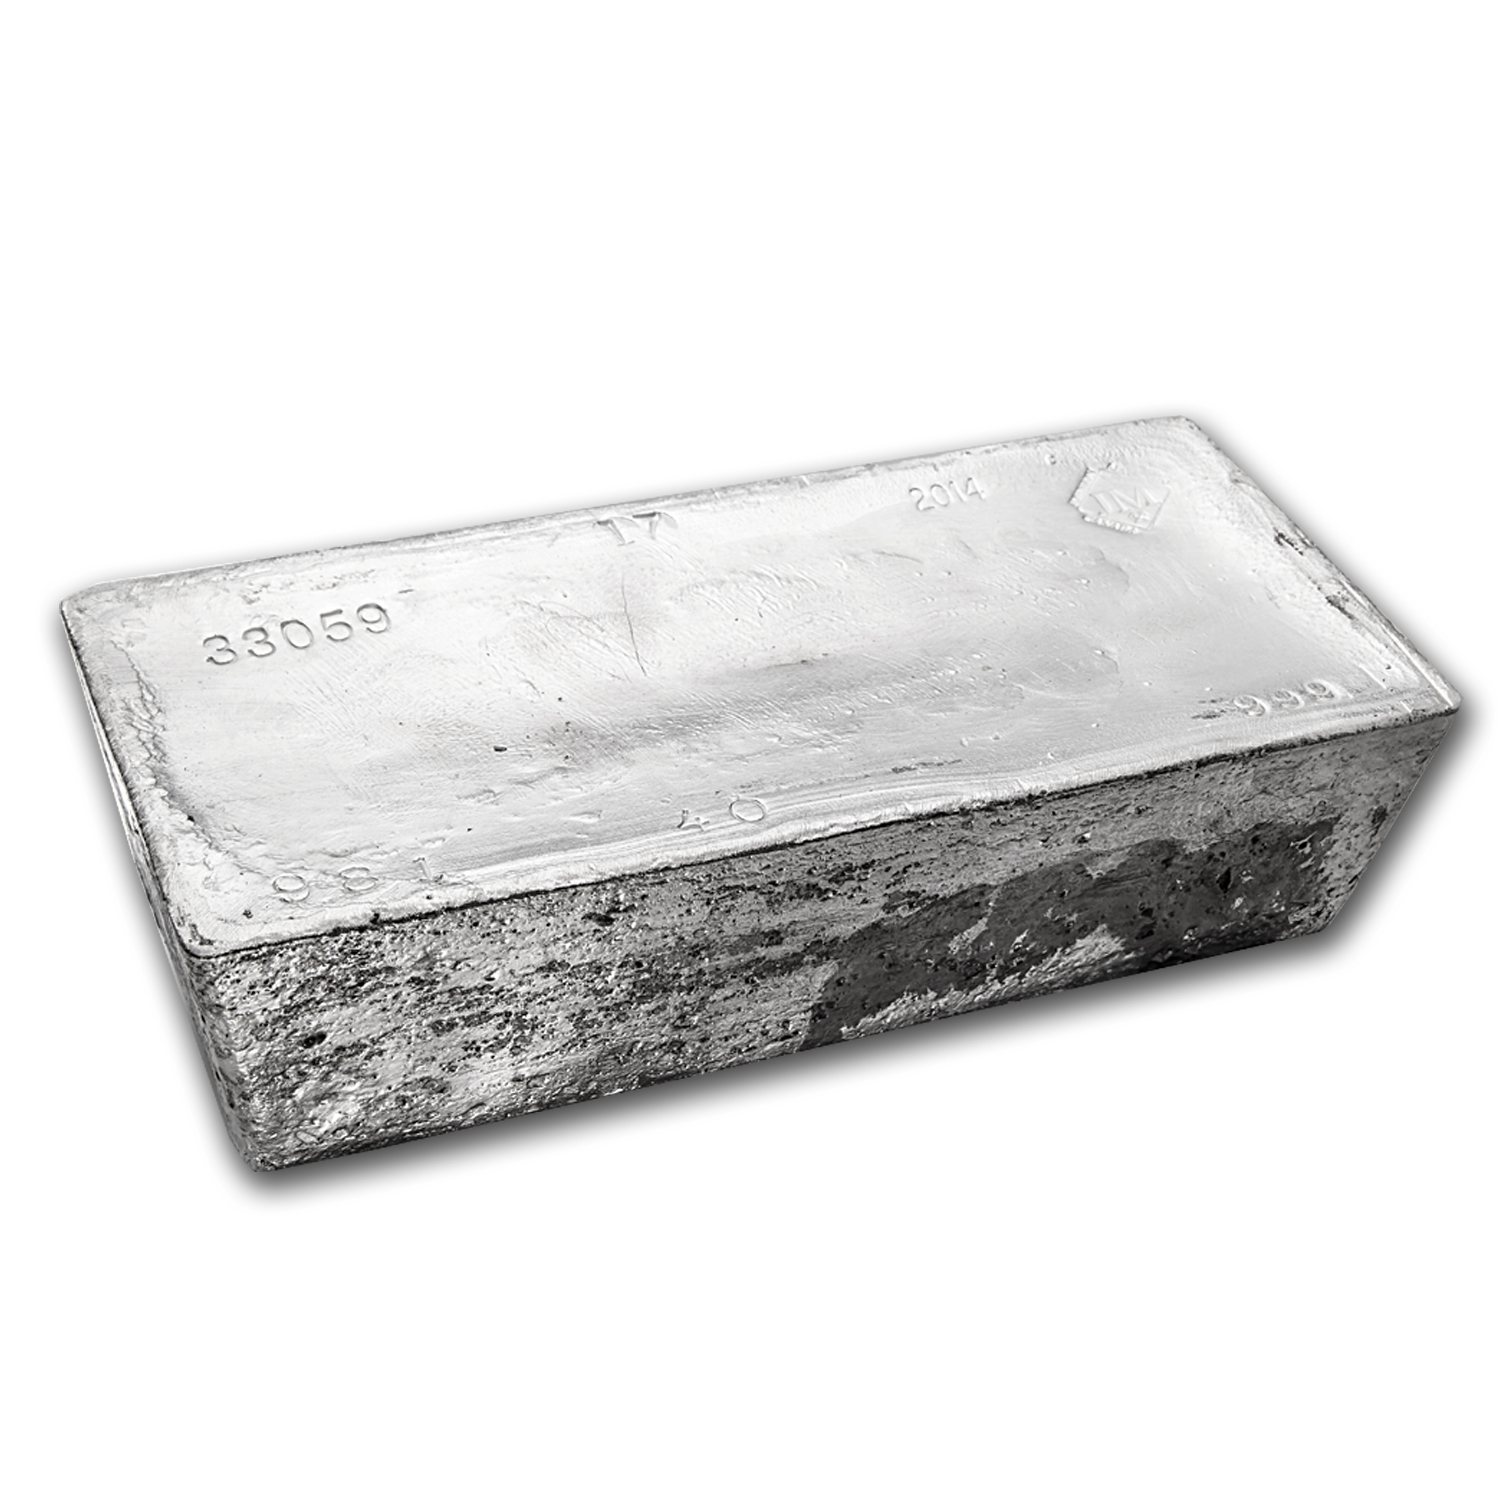 946.40 oz Silver Bar - Johnson Matthey